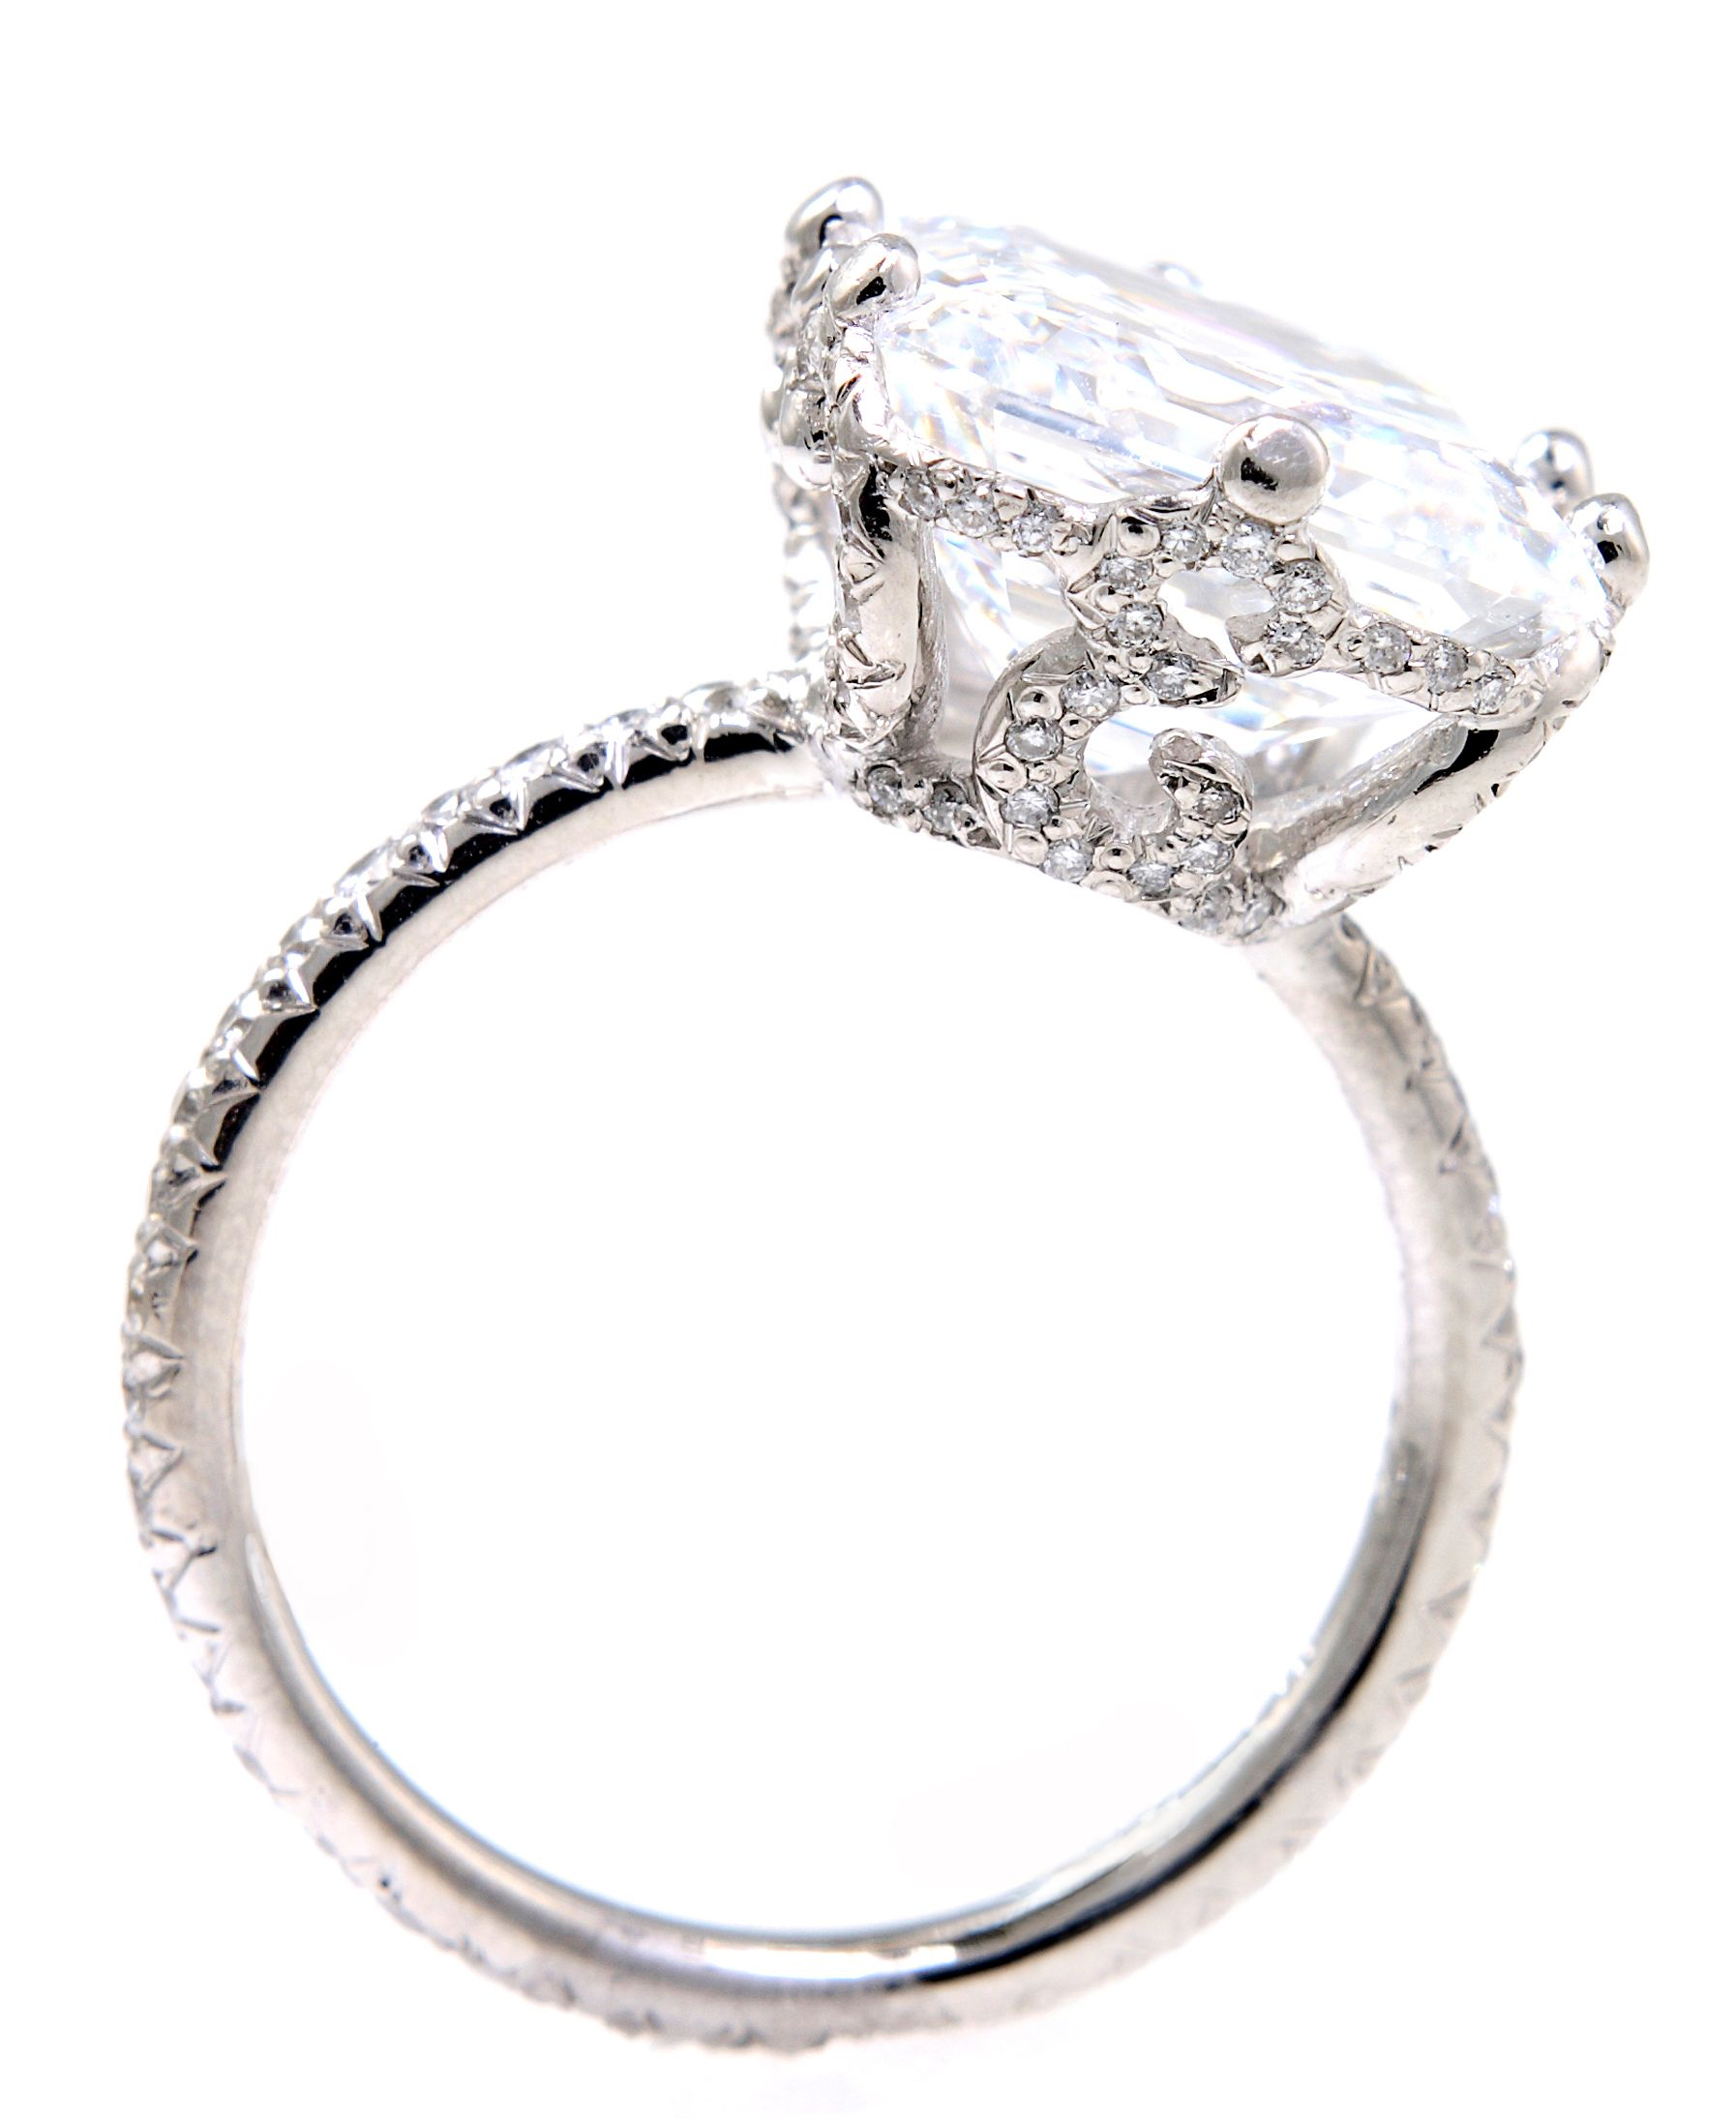 Ellen Initial Engagement Ring By Erica Courtney® (pictured With An